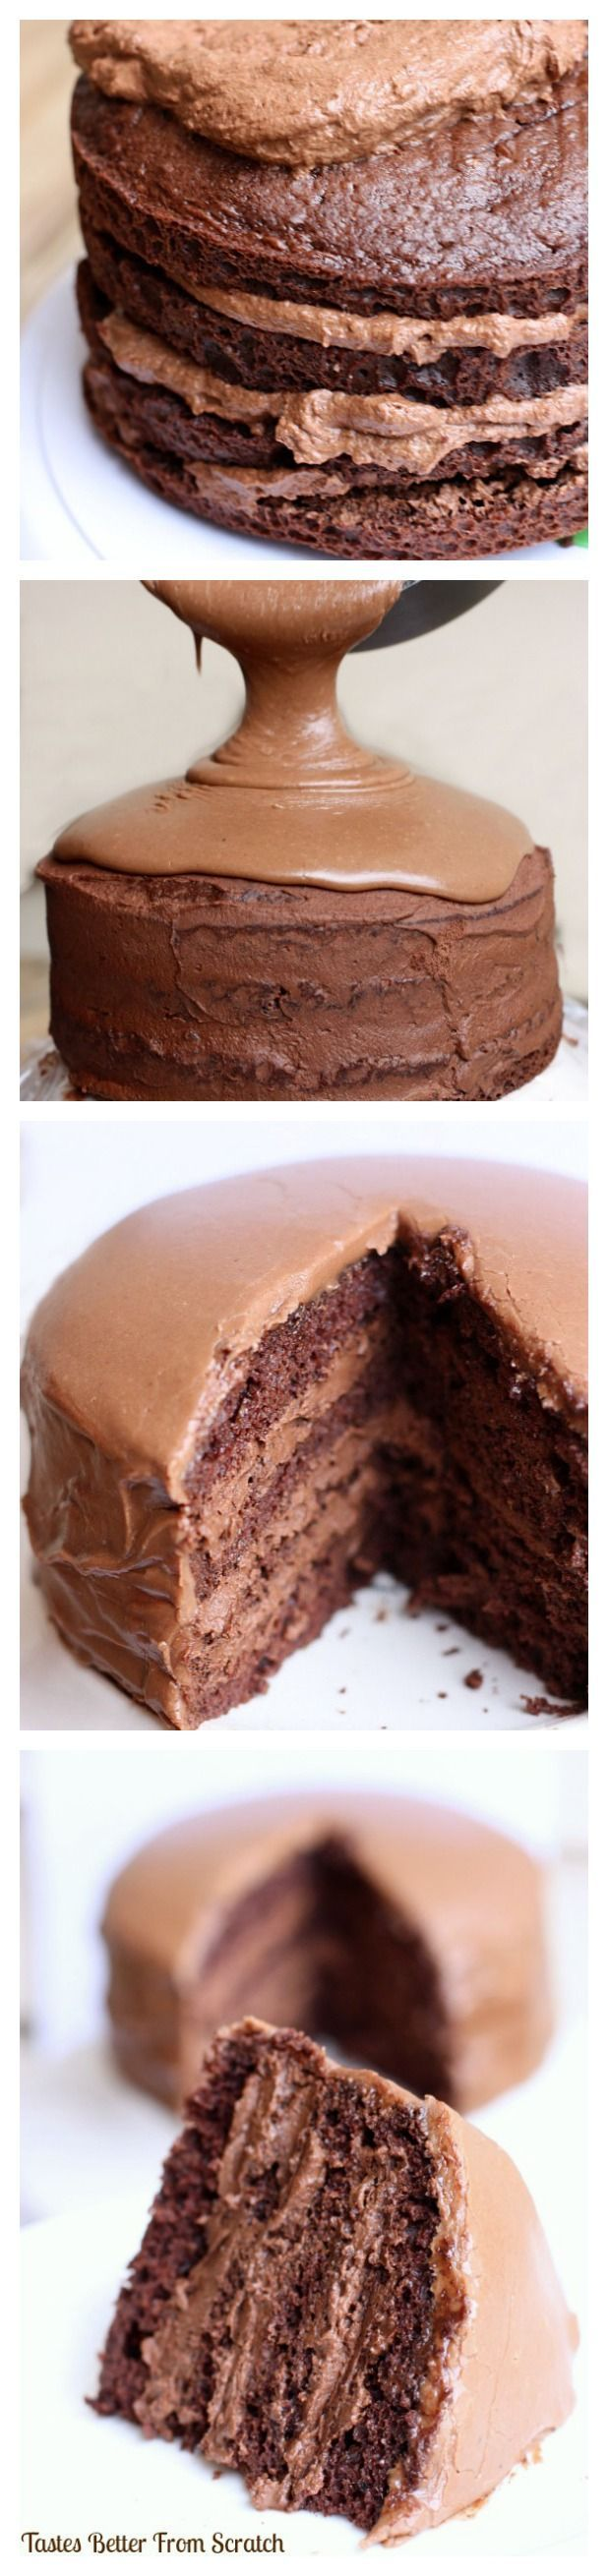 The BEST Chocolate Cake with Chocolate Mousse Filling! My favorite chocolate cake recipe with dark choc mousse fillling and warm frosting poured on top! AMAZING! Recipe from TastesBetterFromScratch.com